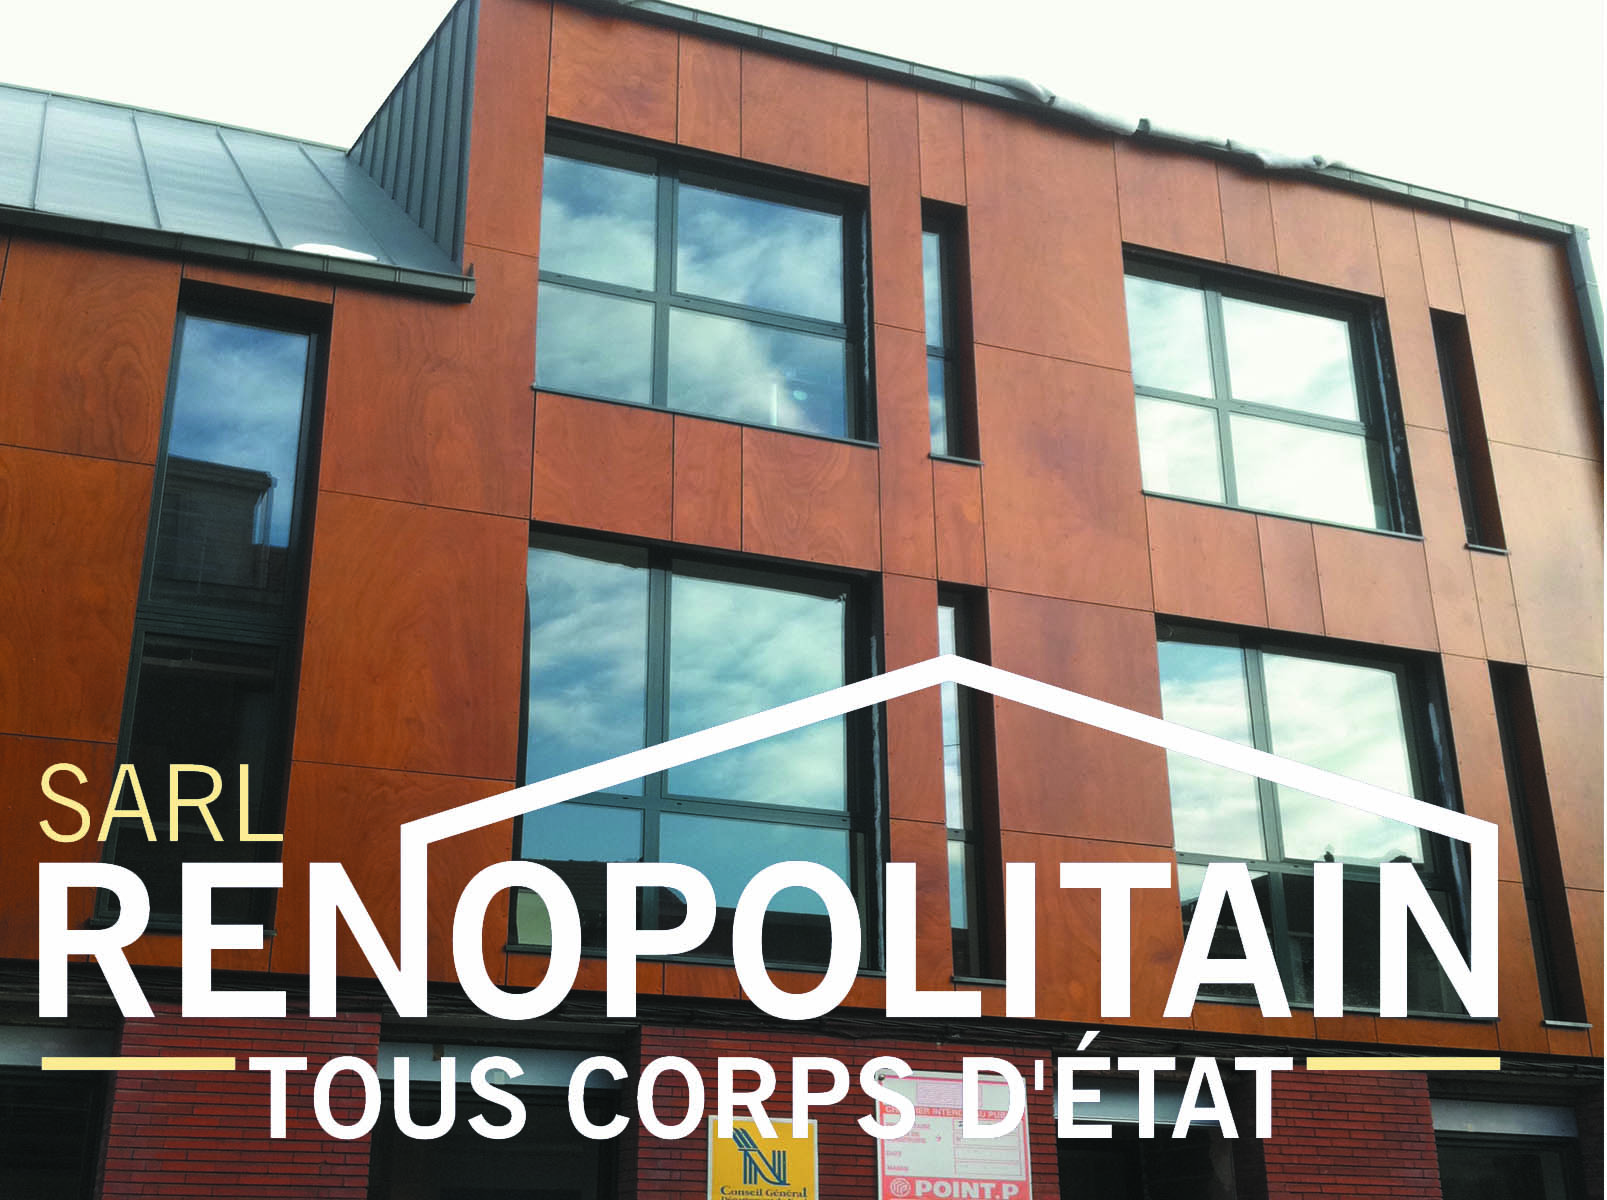 Home-renopolitain3-1607-1200-Apres